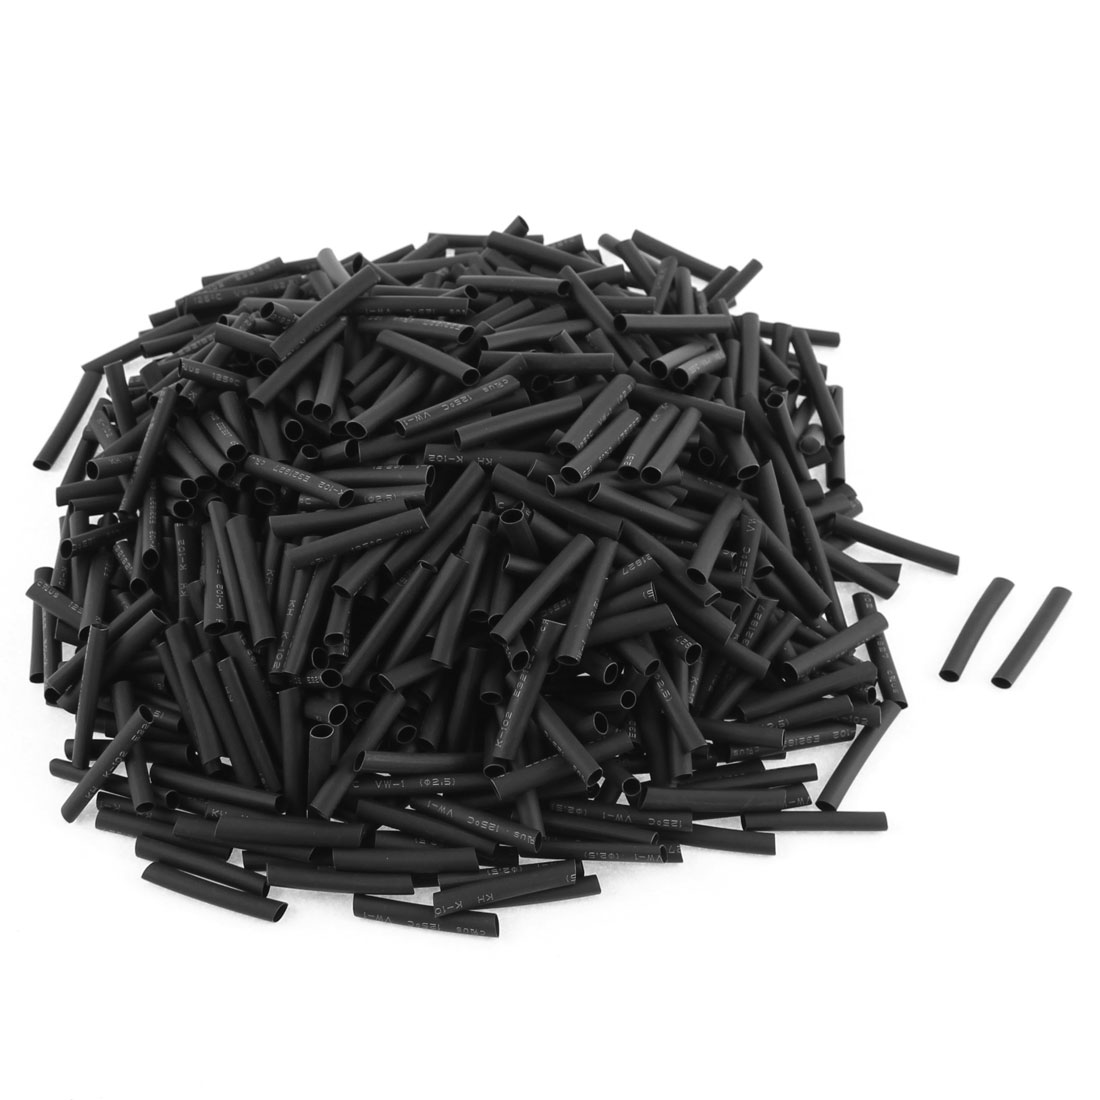 Electrical Connection Cable Sleeve 25mm Length Heat Shrink Tubing Black 800Pcs